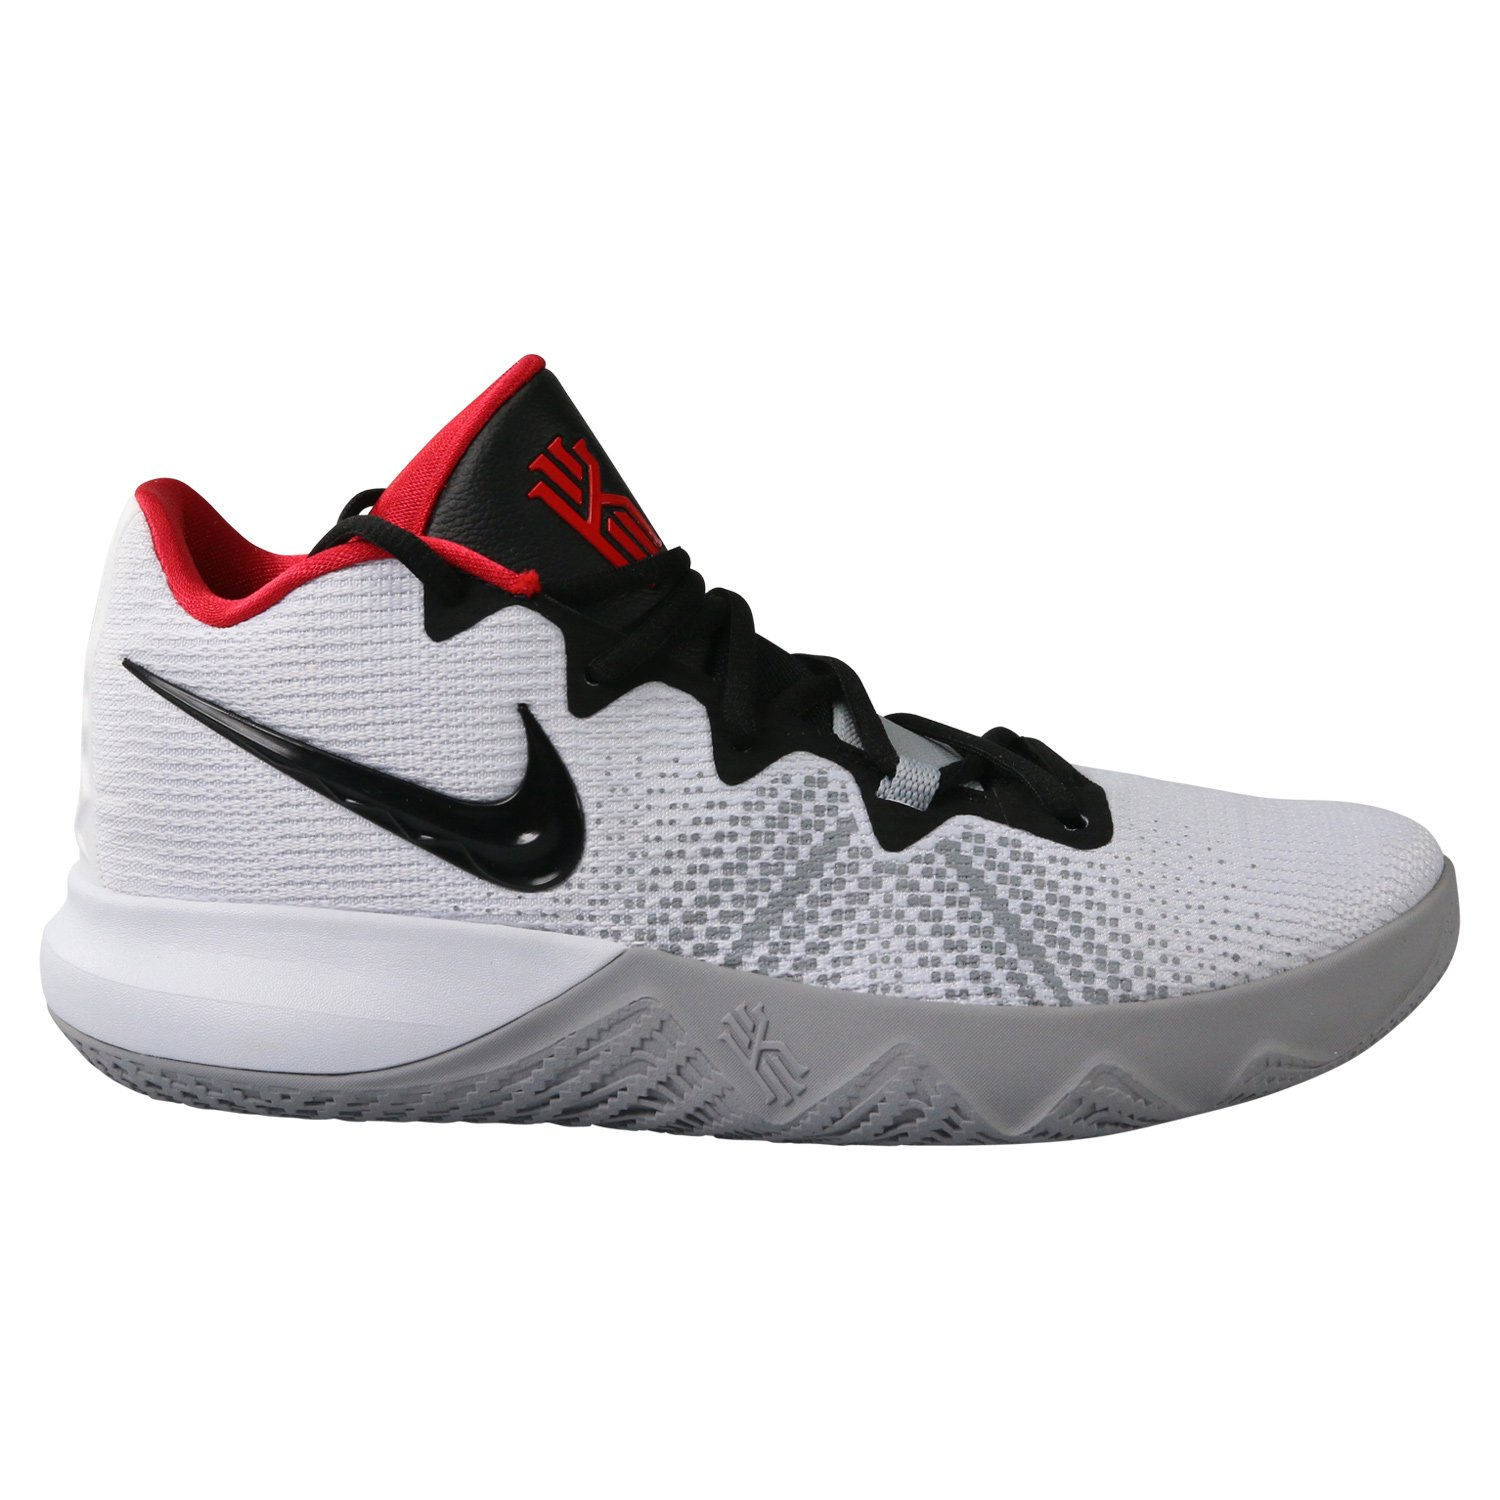 Nike Kyrie Flytrap Mens Hi Top Basketball Trainers AA7071 Sneakers Shoes (UK 7 US 8 EU 41, White Black University red 102)